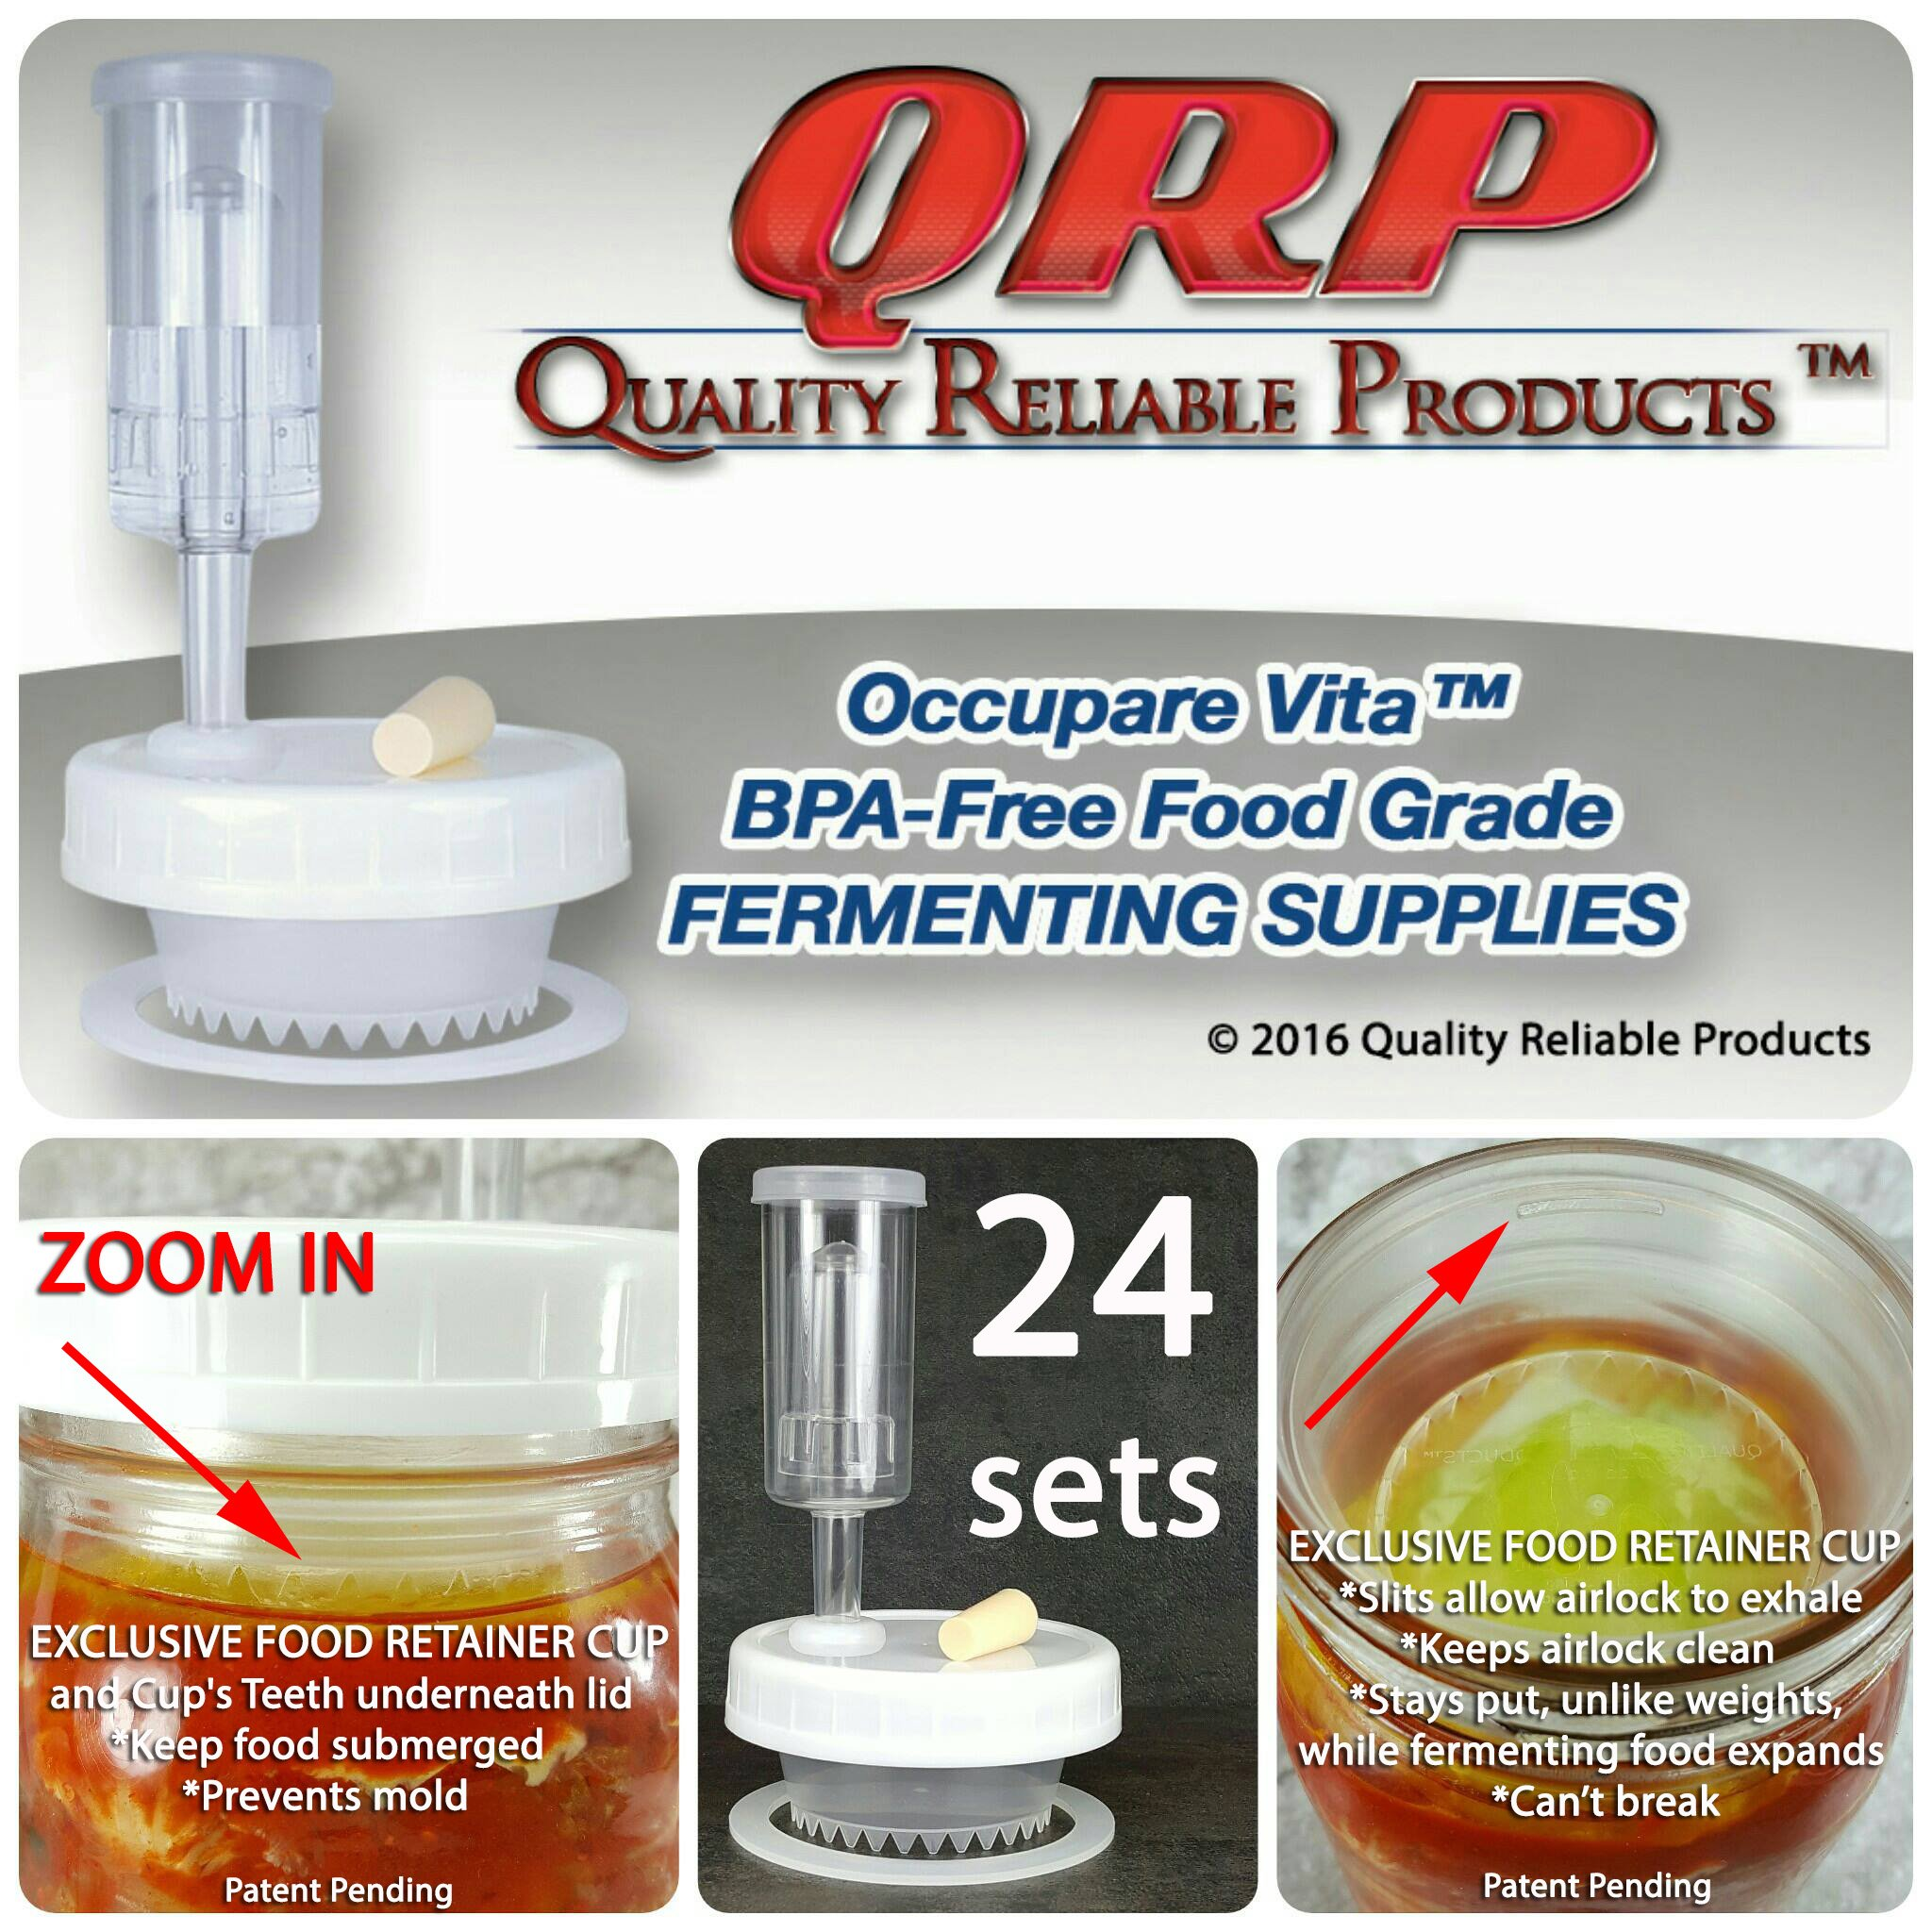 24 QRP No Messy Overflow No Weights Needed Mold-Proof Mason Jar Fermentation Kits with Exclusive Food Retainer Cups keep food submerged in brine (PRO PACK 24 WIDE MOUTH KITS)